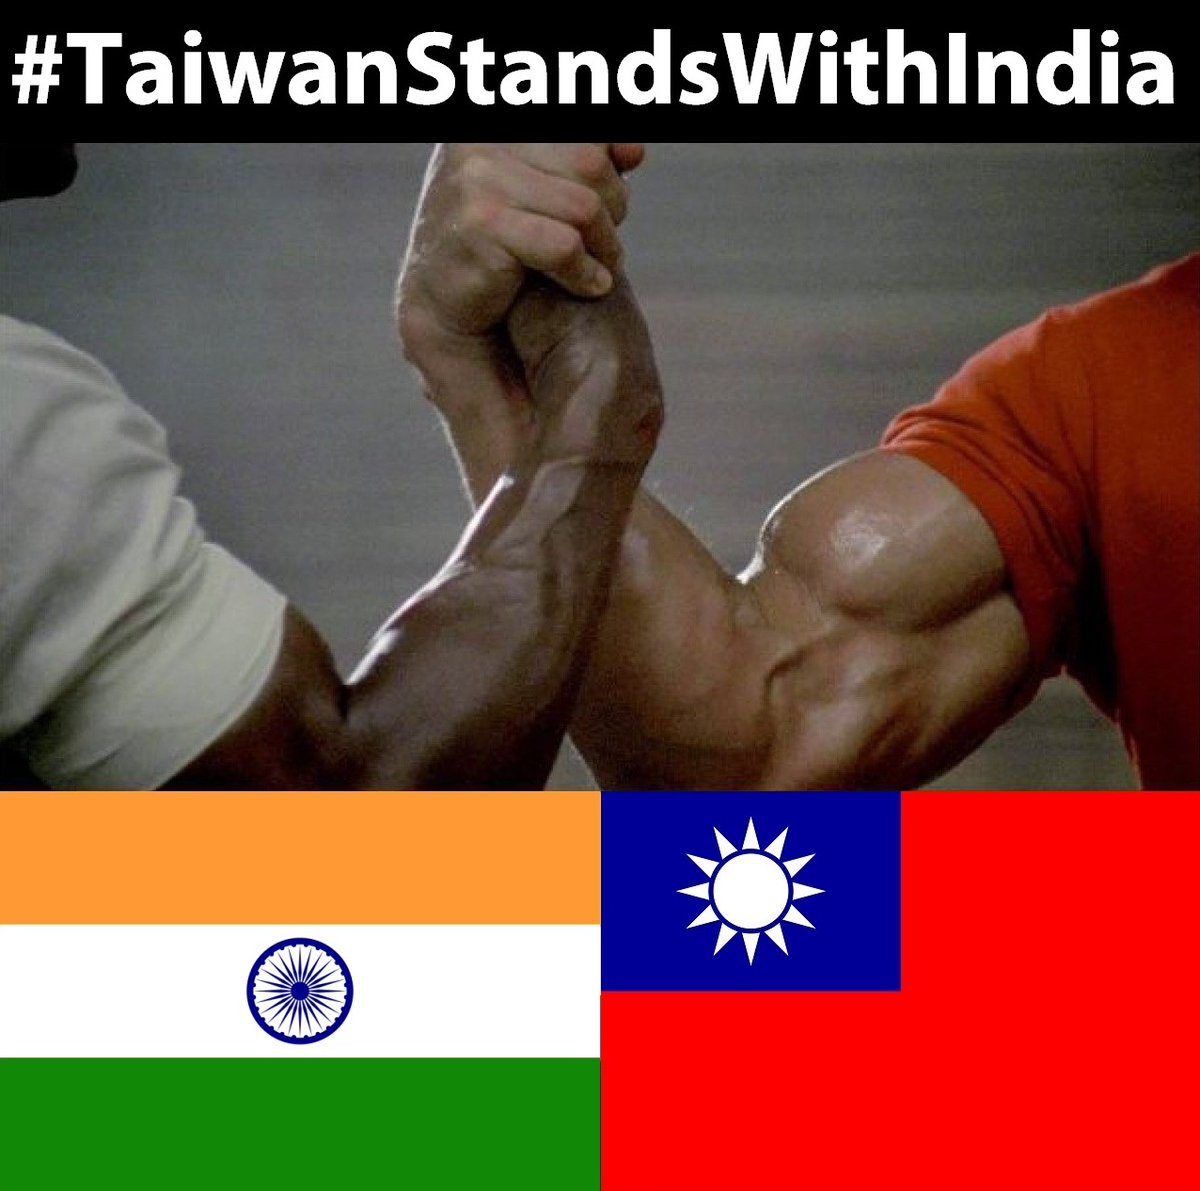 Photo of the Day: Taiwan stands with India #TaiwanStandsWithIndia https://t.co/B7LOQjP2eQ https://t.co/OlKHHUF4Ii